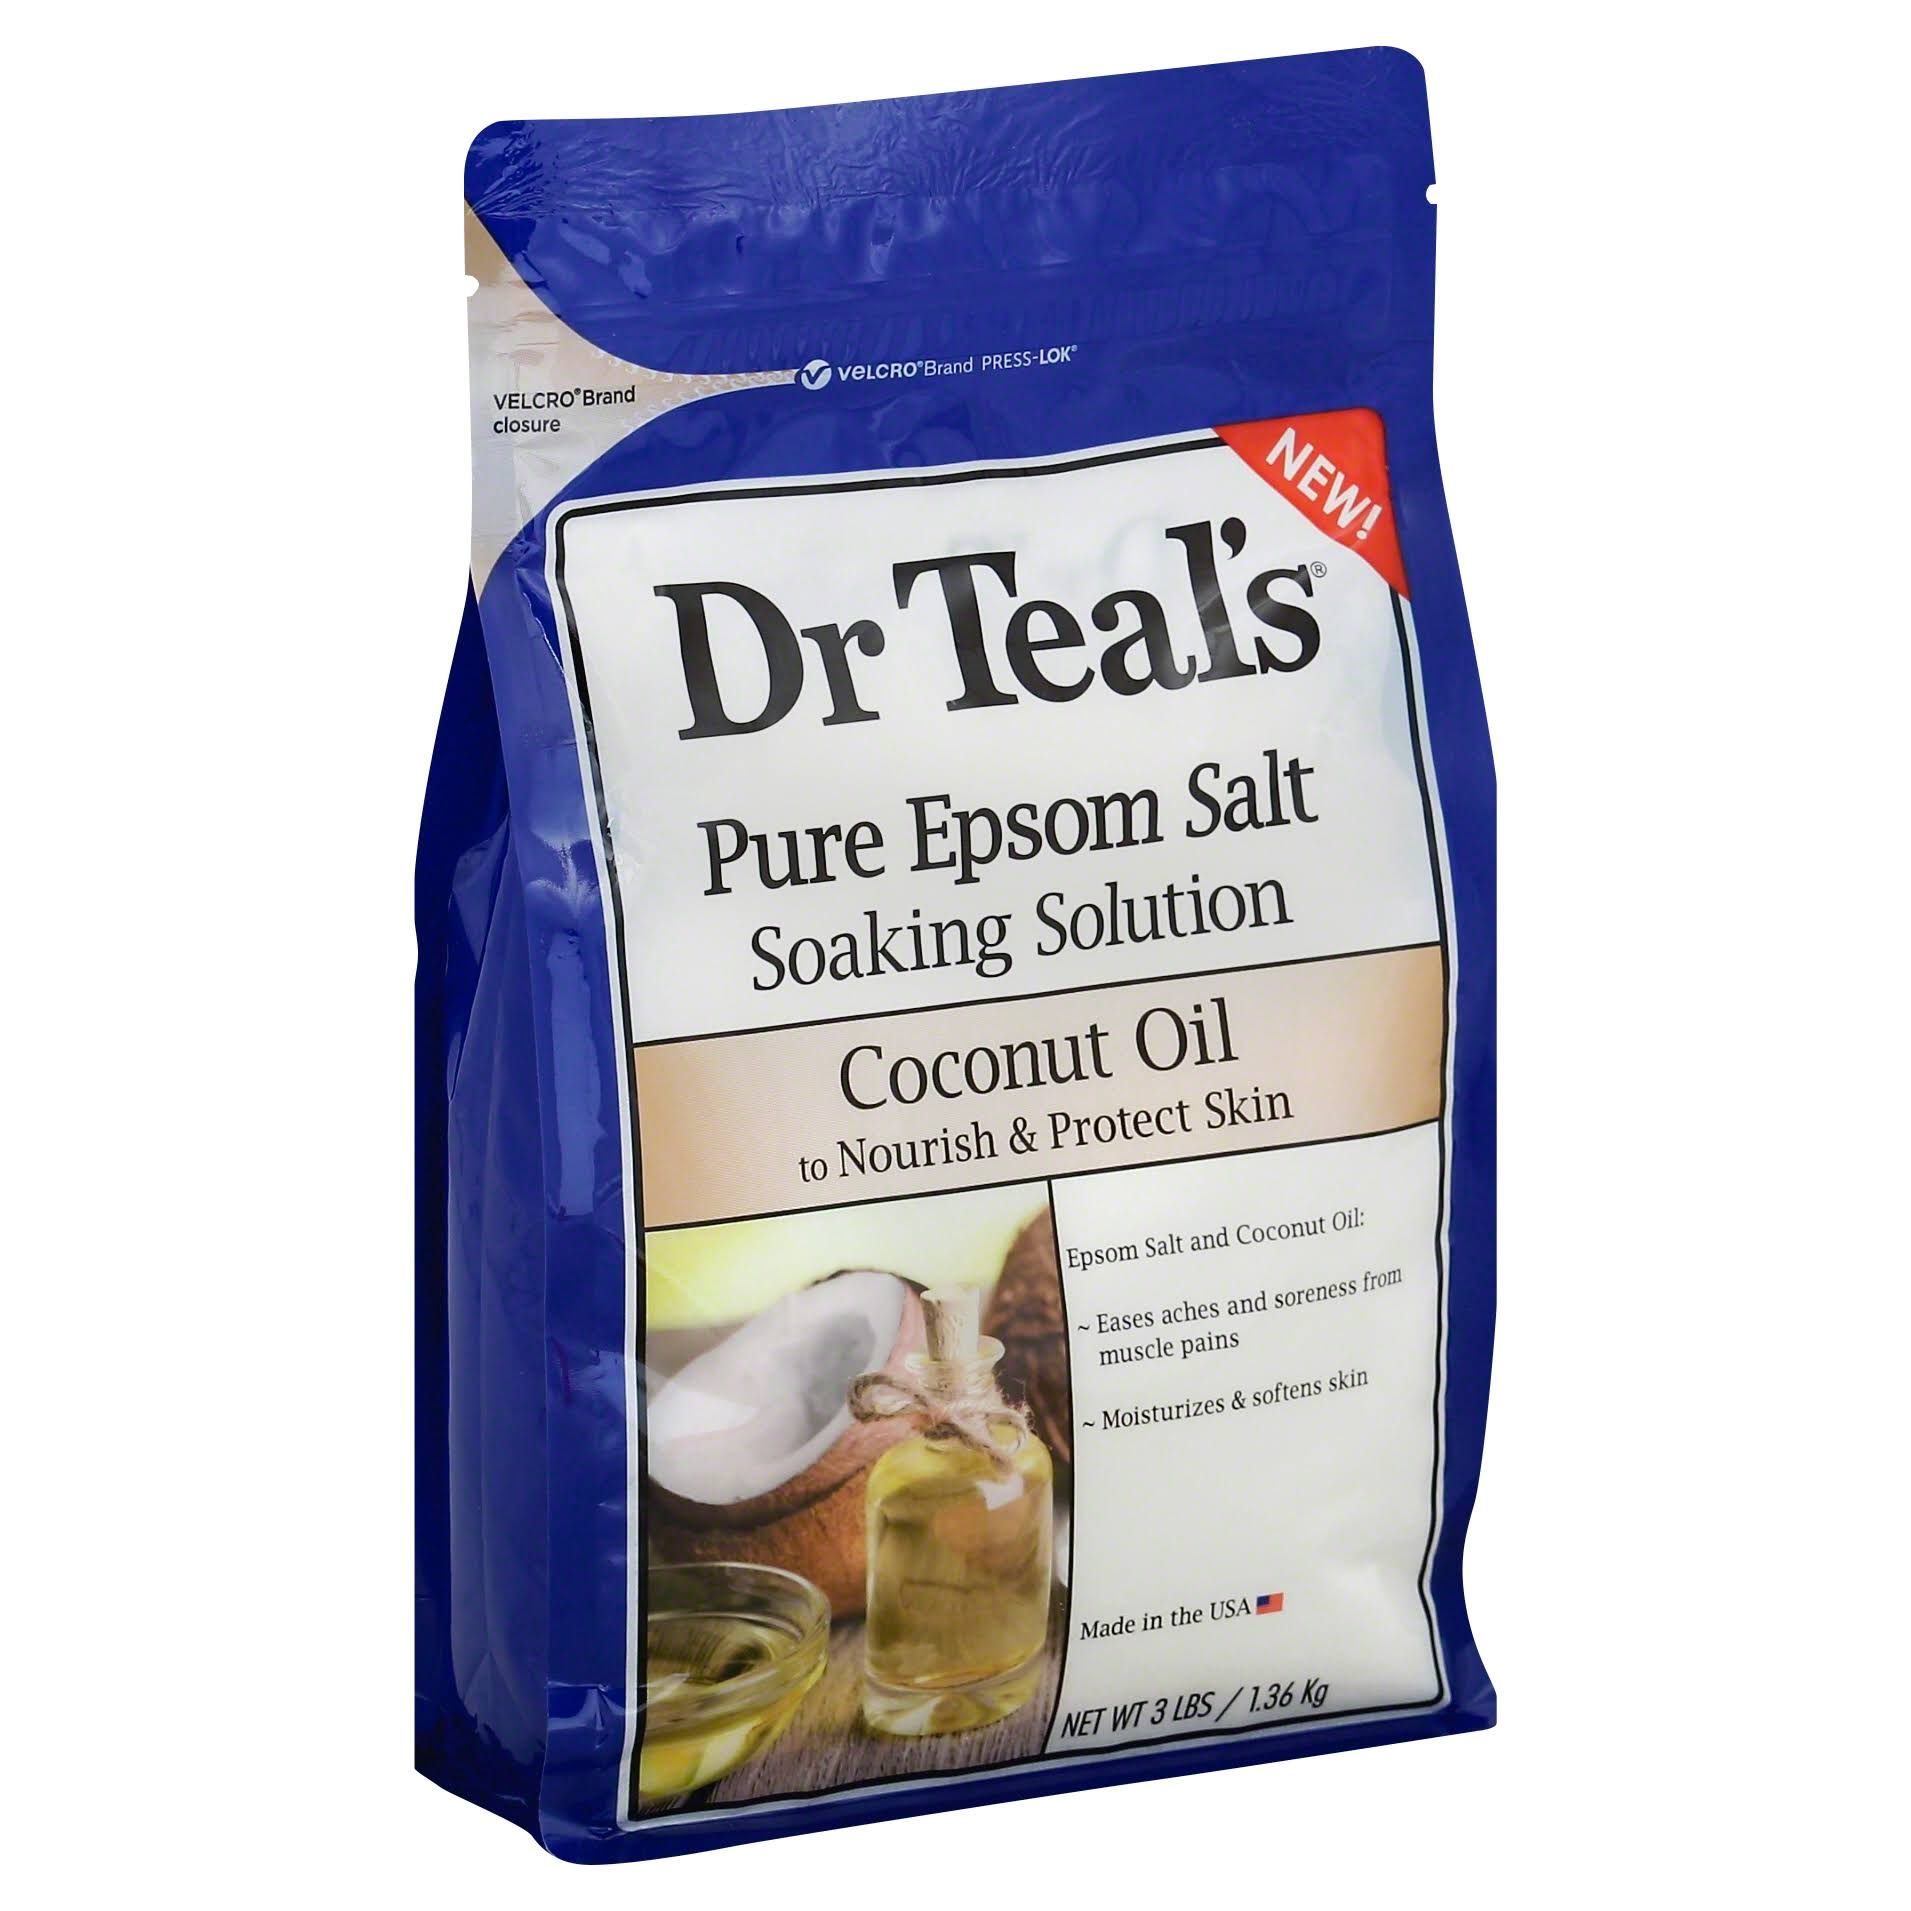 Dr Teal's Pure Epsom Salt Soaking Solution Coconut Oil